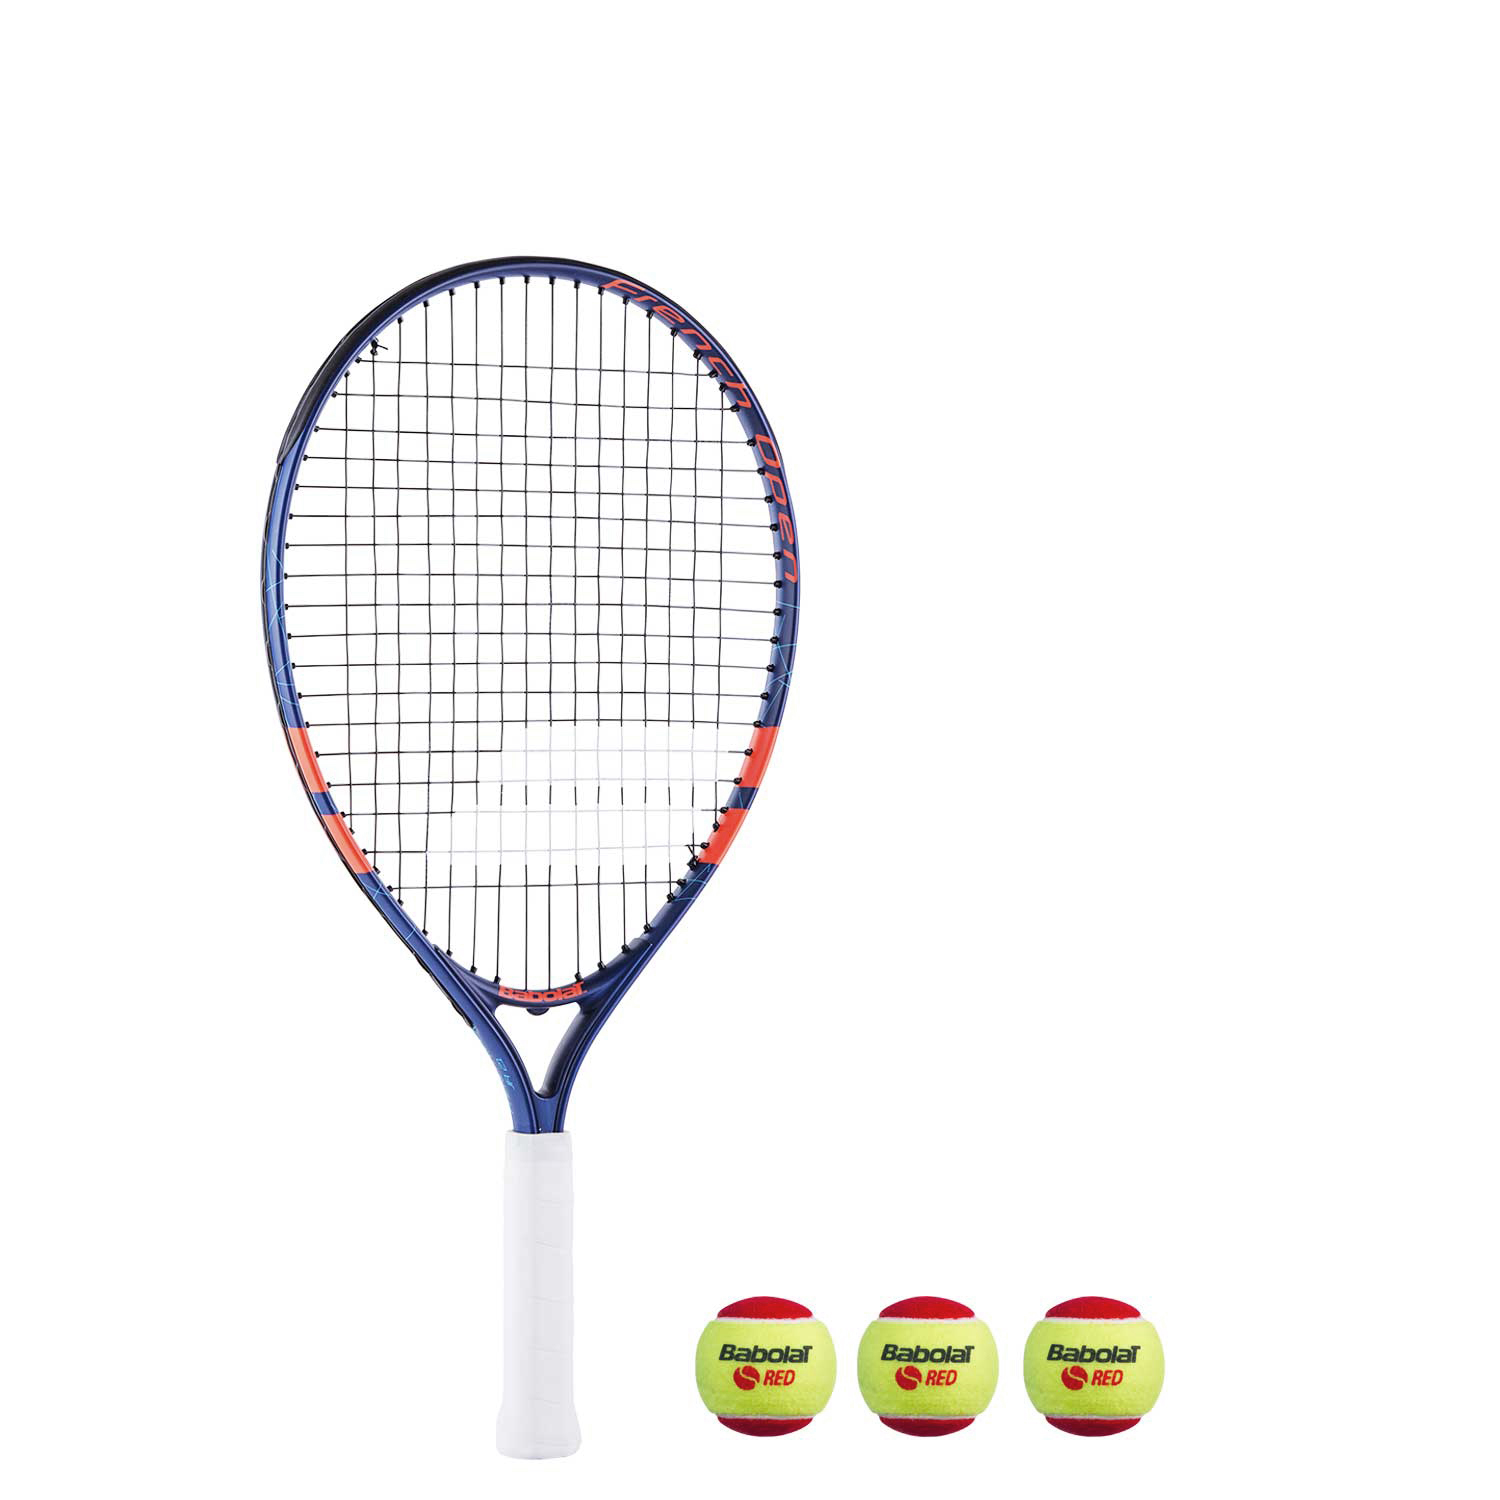 Теннисная ракетка BABOLAT KIT RG/FO JR 21+3 RED FELT BALLS. Фото ¹2